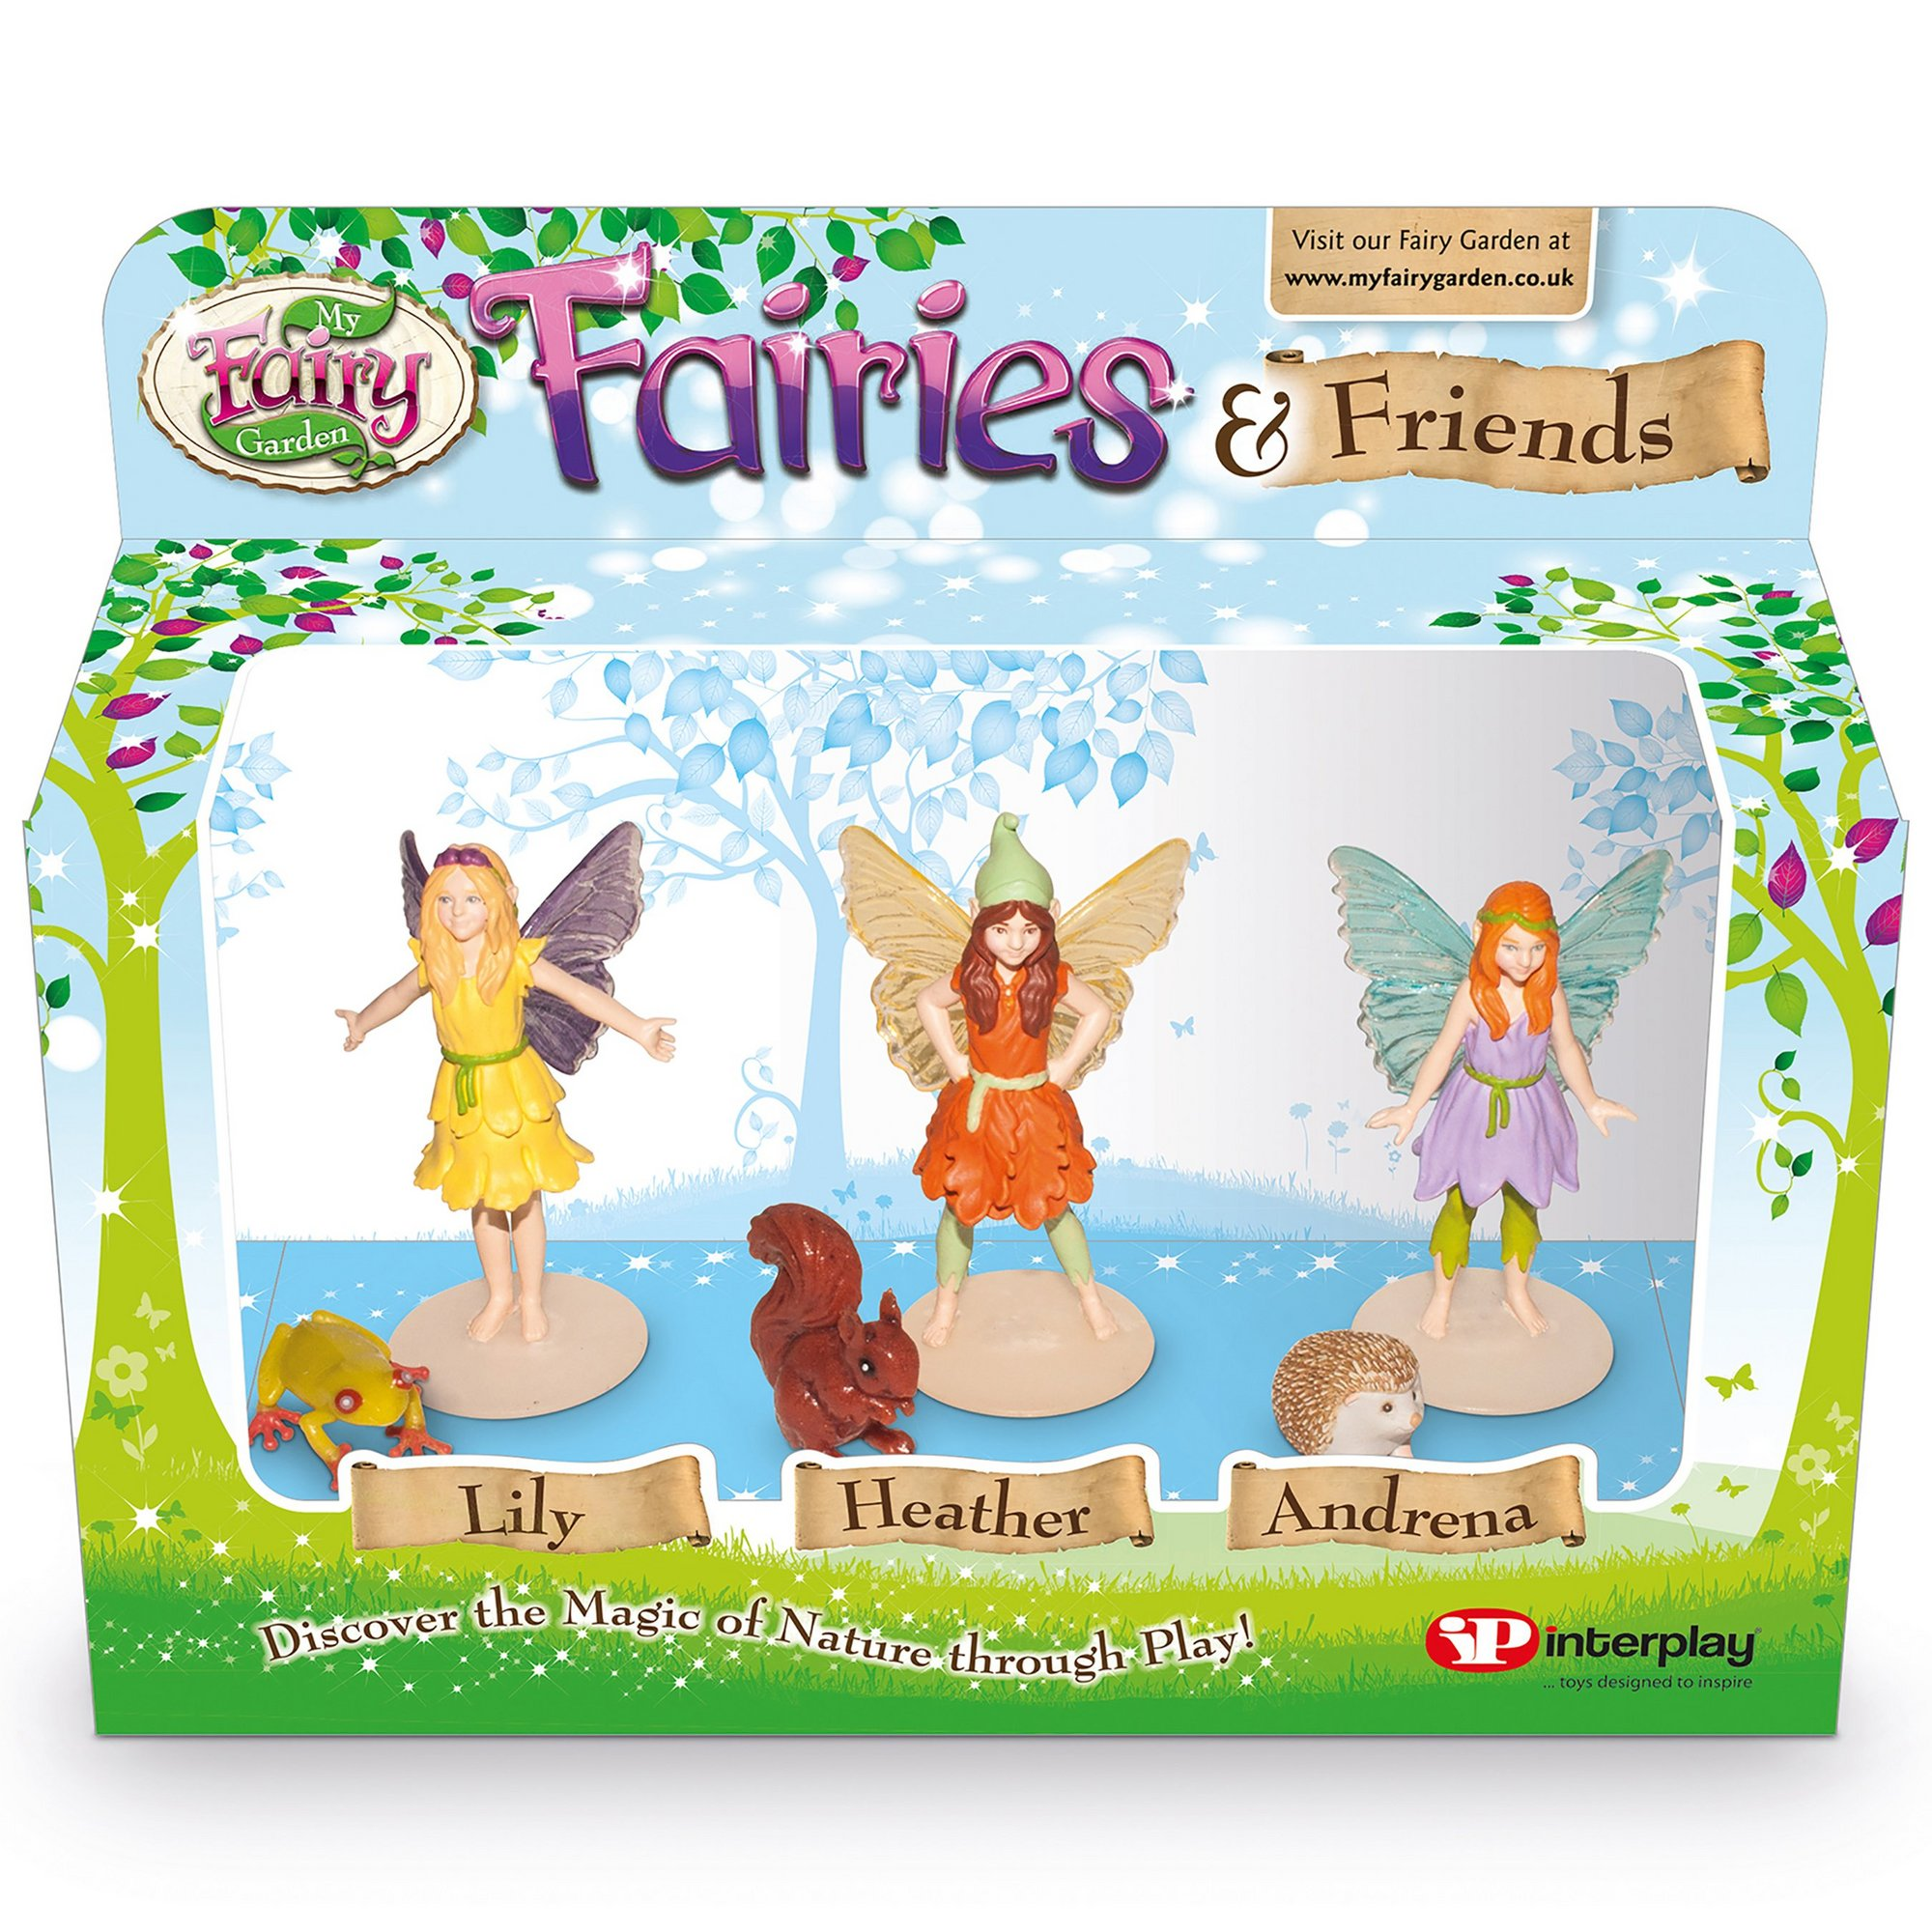 Image of My Fairy Garden Fairies and Friends